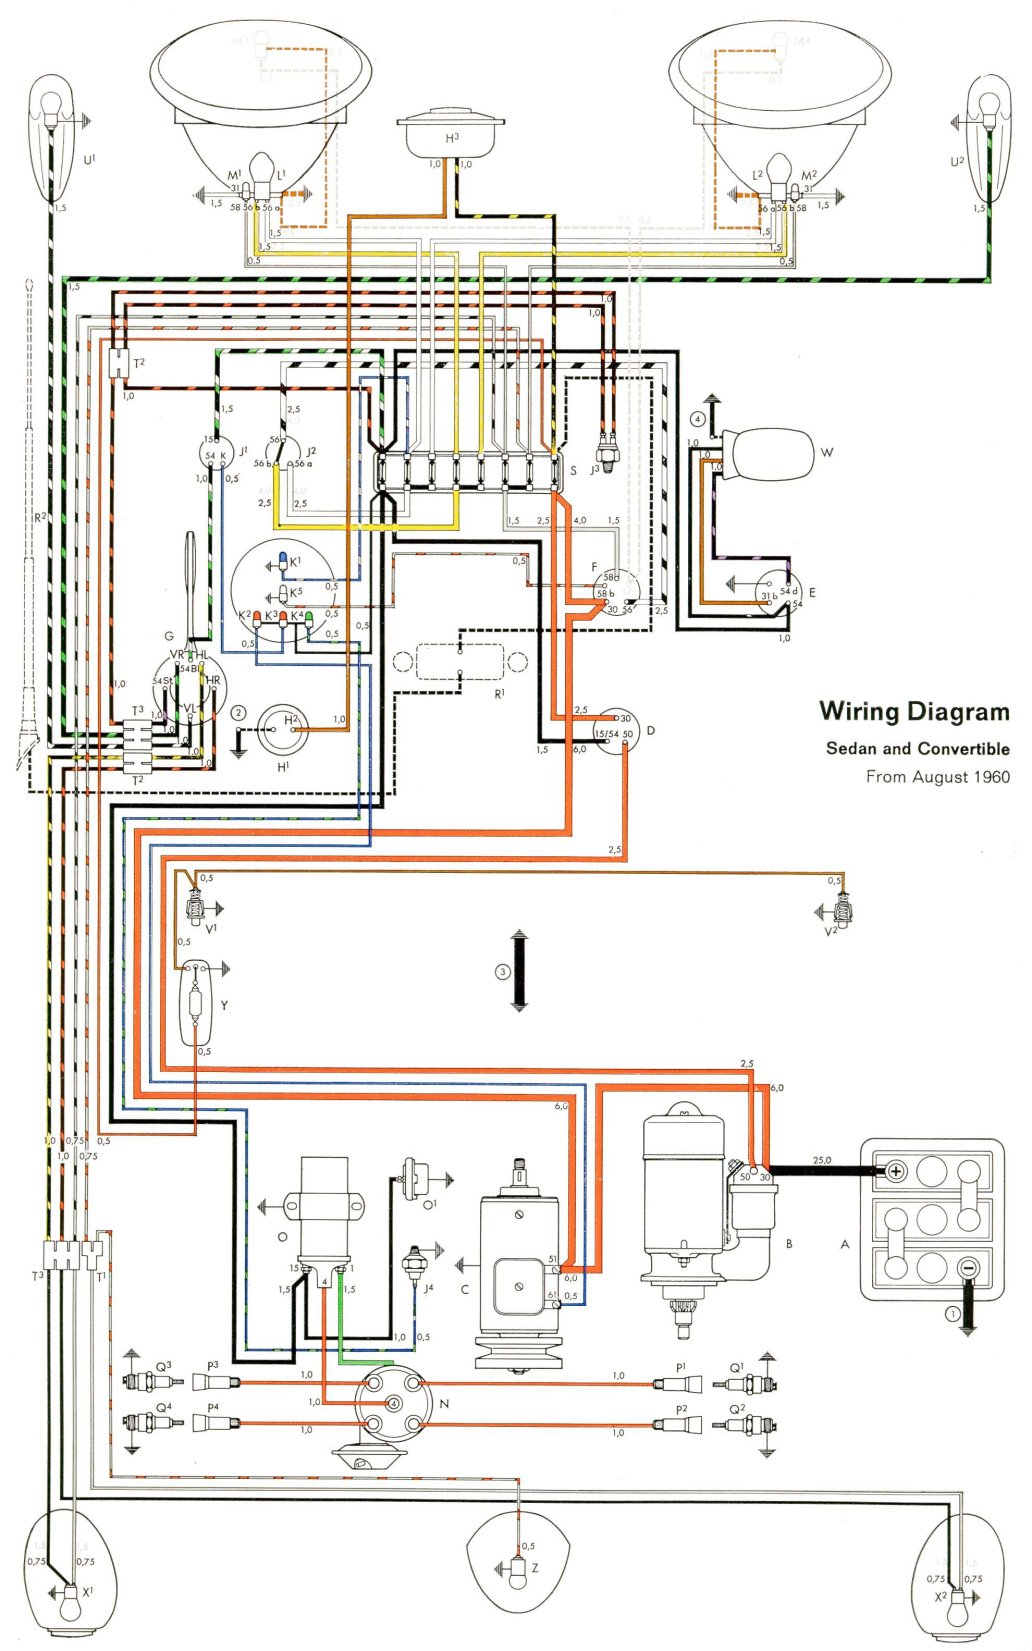 bug_61 1961 beetle wiring diagram thegoldenbug com 1973 vw wiring diagram at mifinder.co